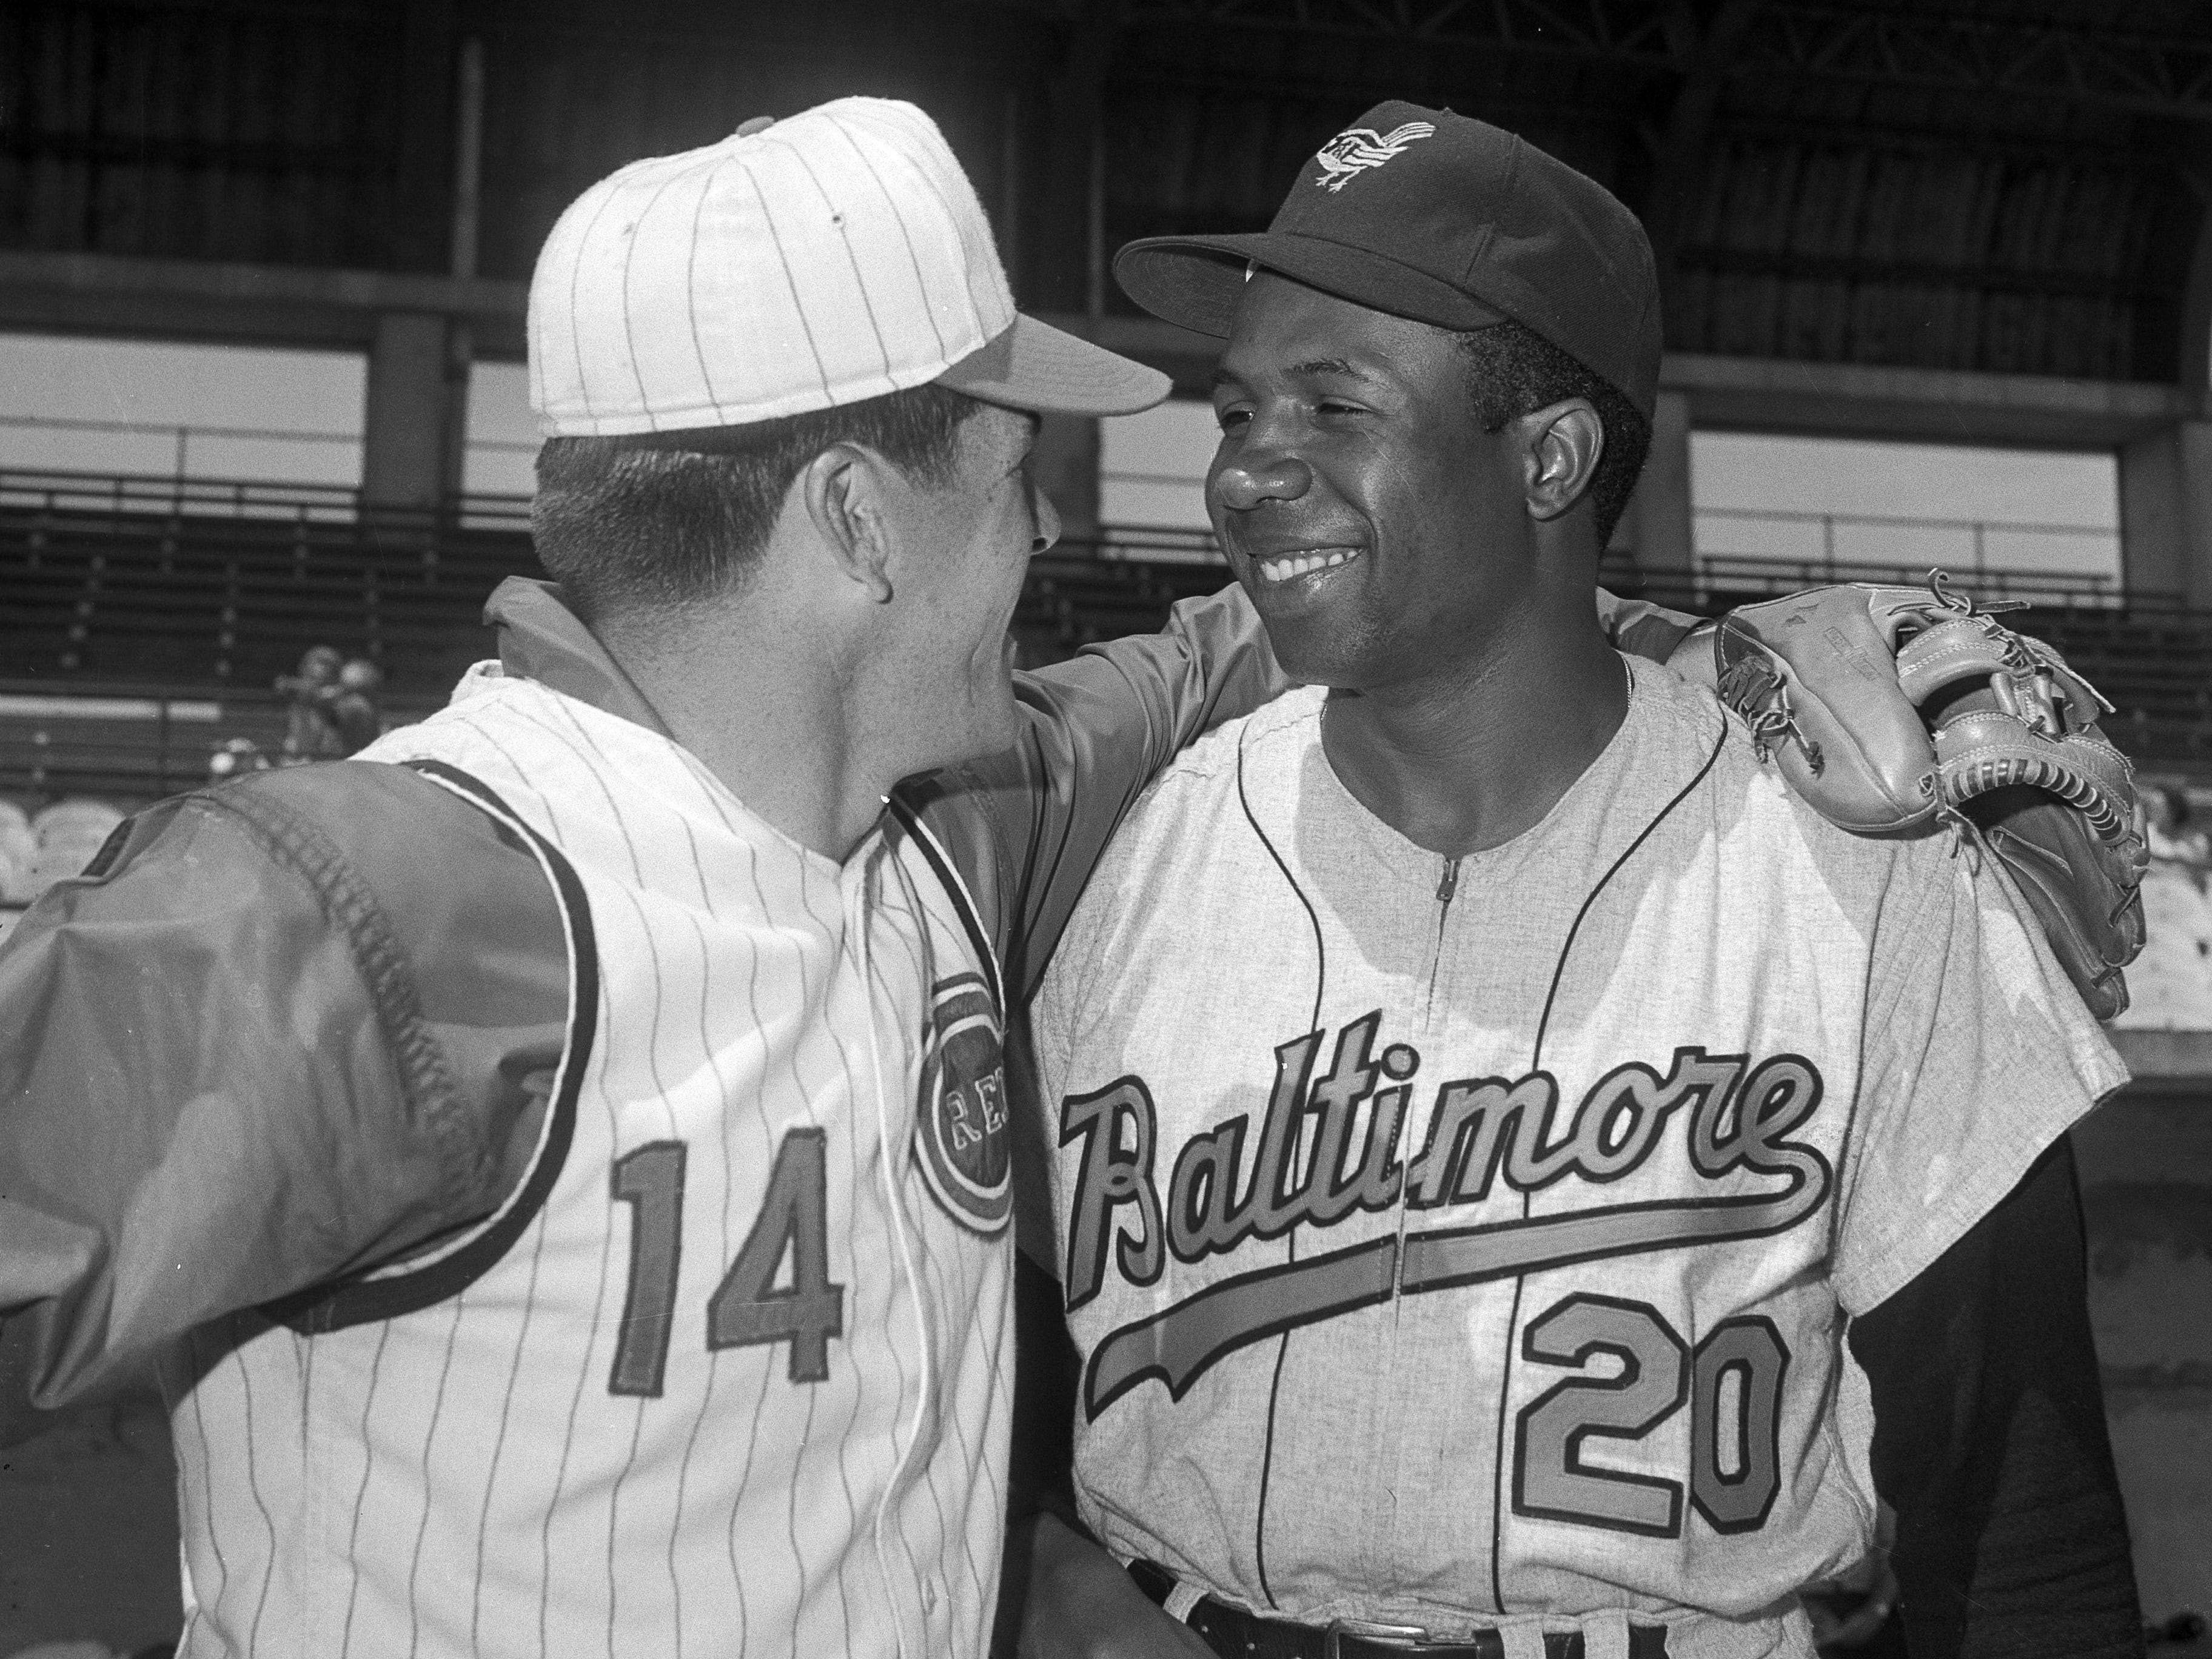 Frank Robinson with the all-time hit king Pete Rose in a 1966 photo.